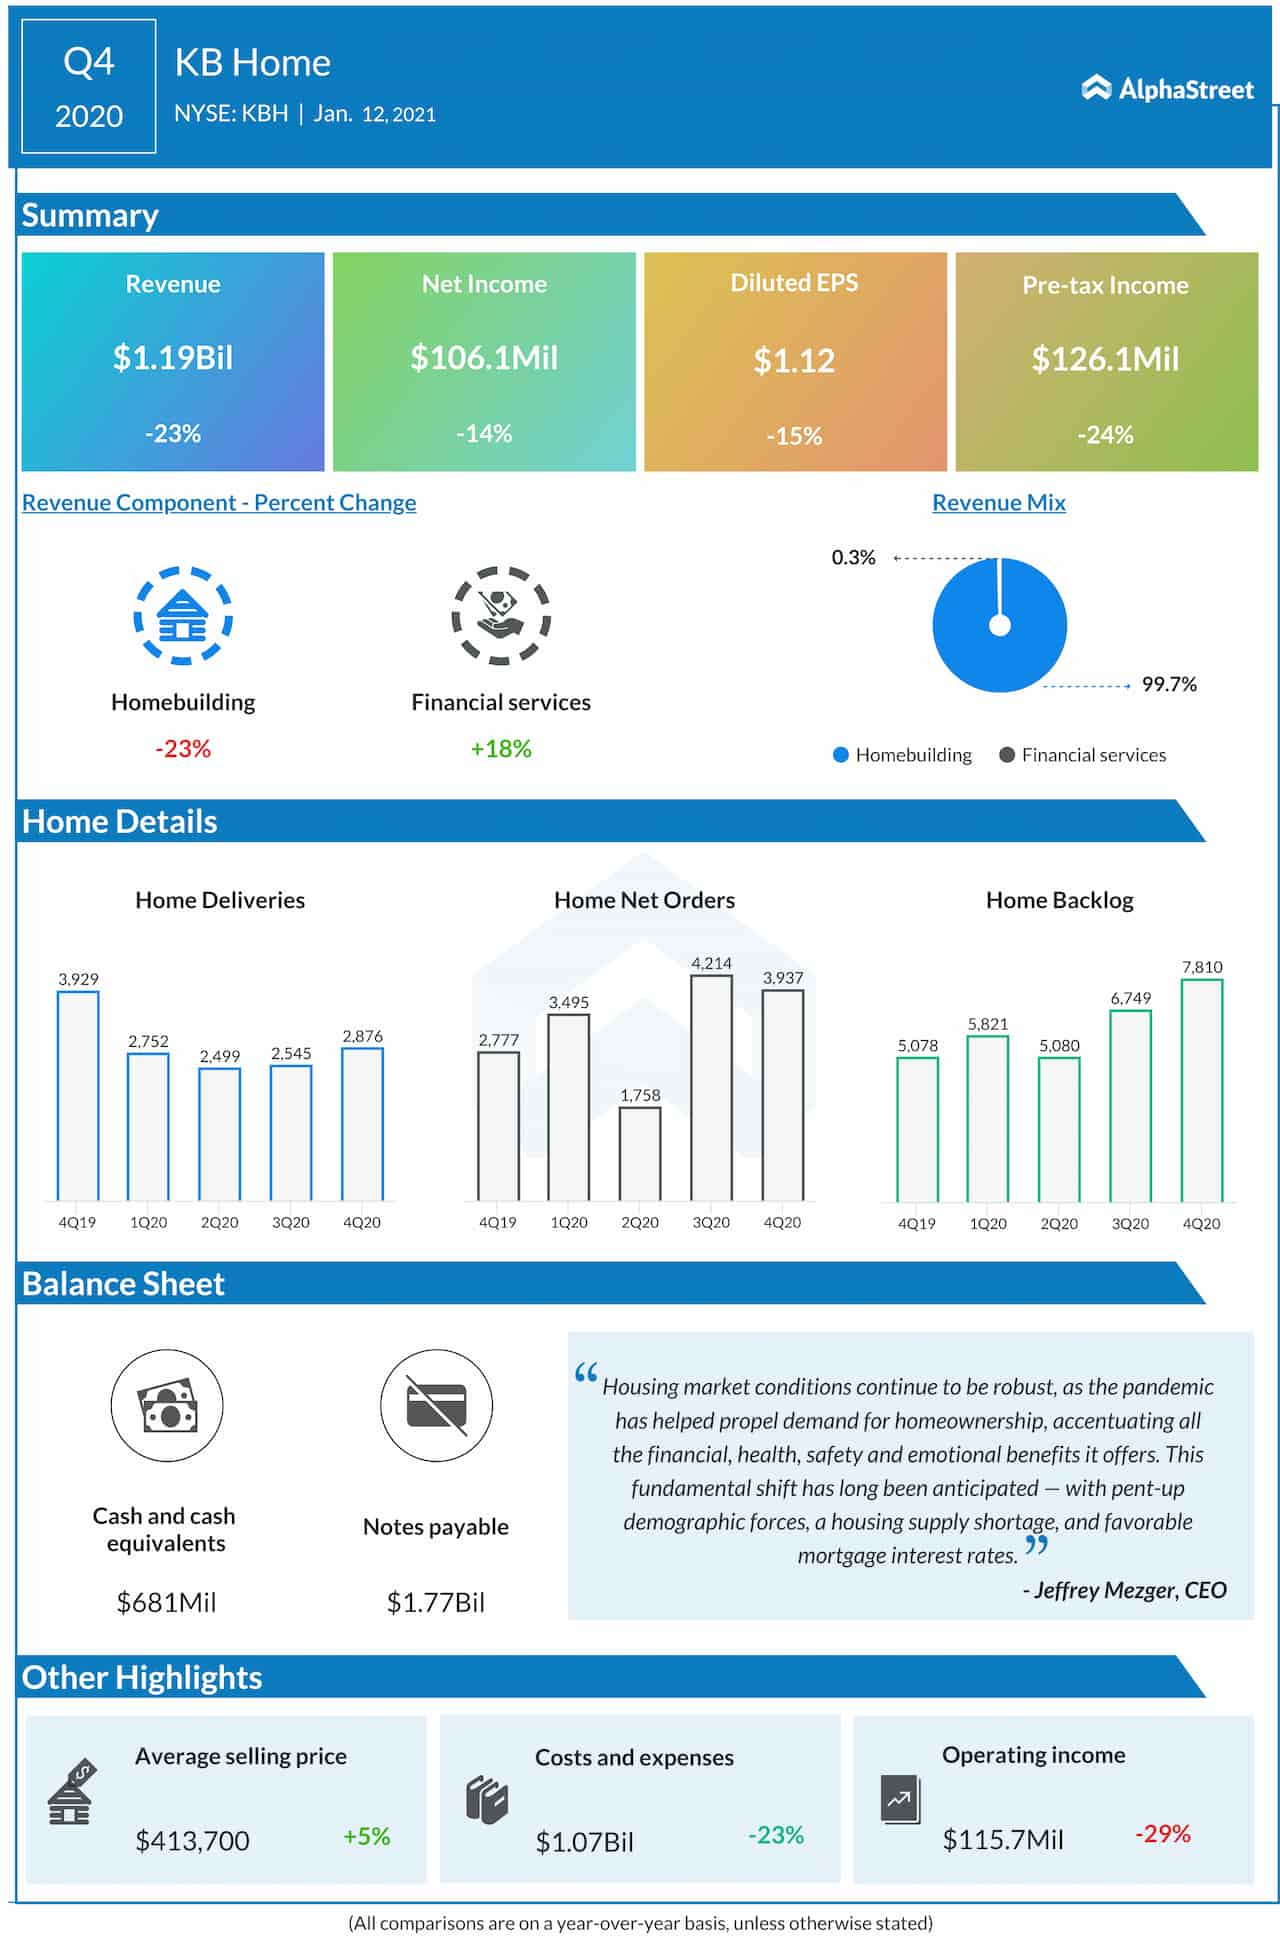 KB Home Q4 2020 earnings infographic